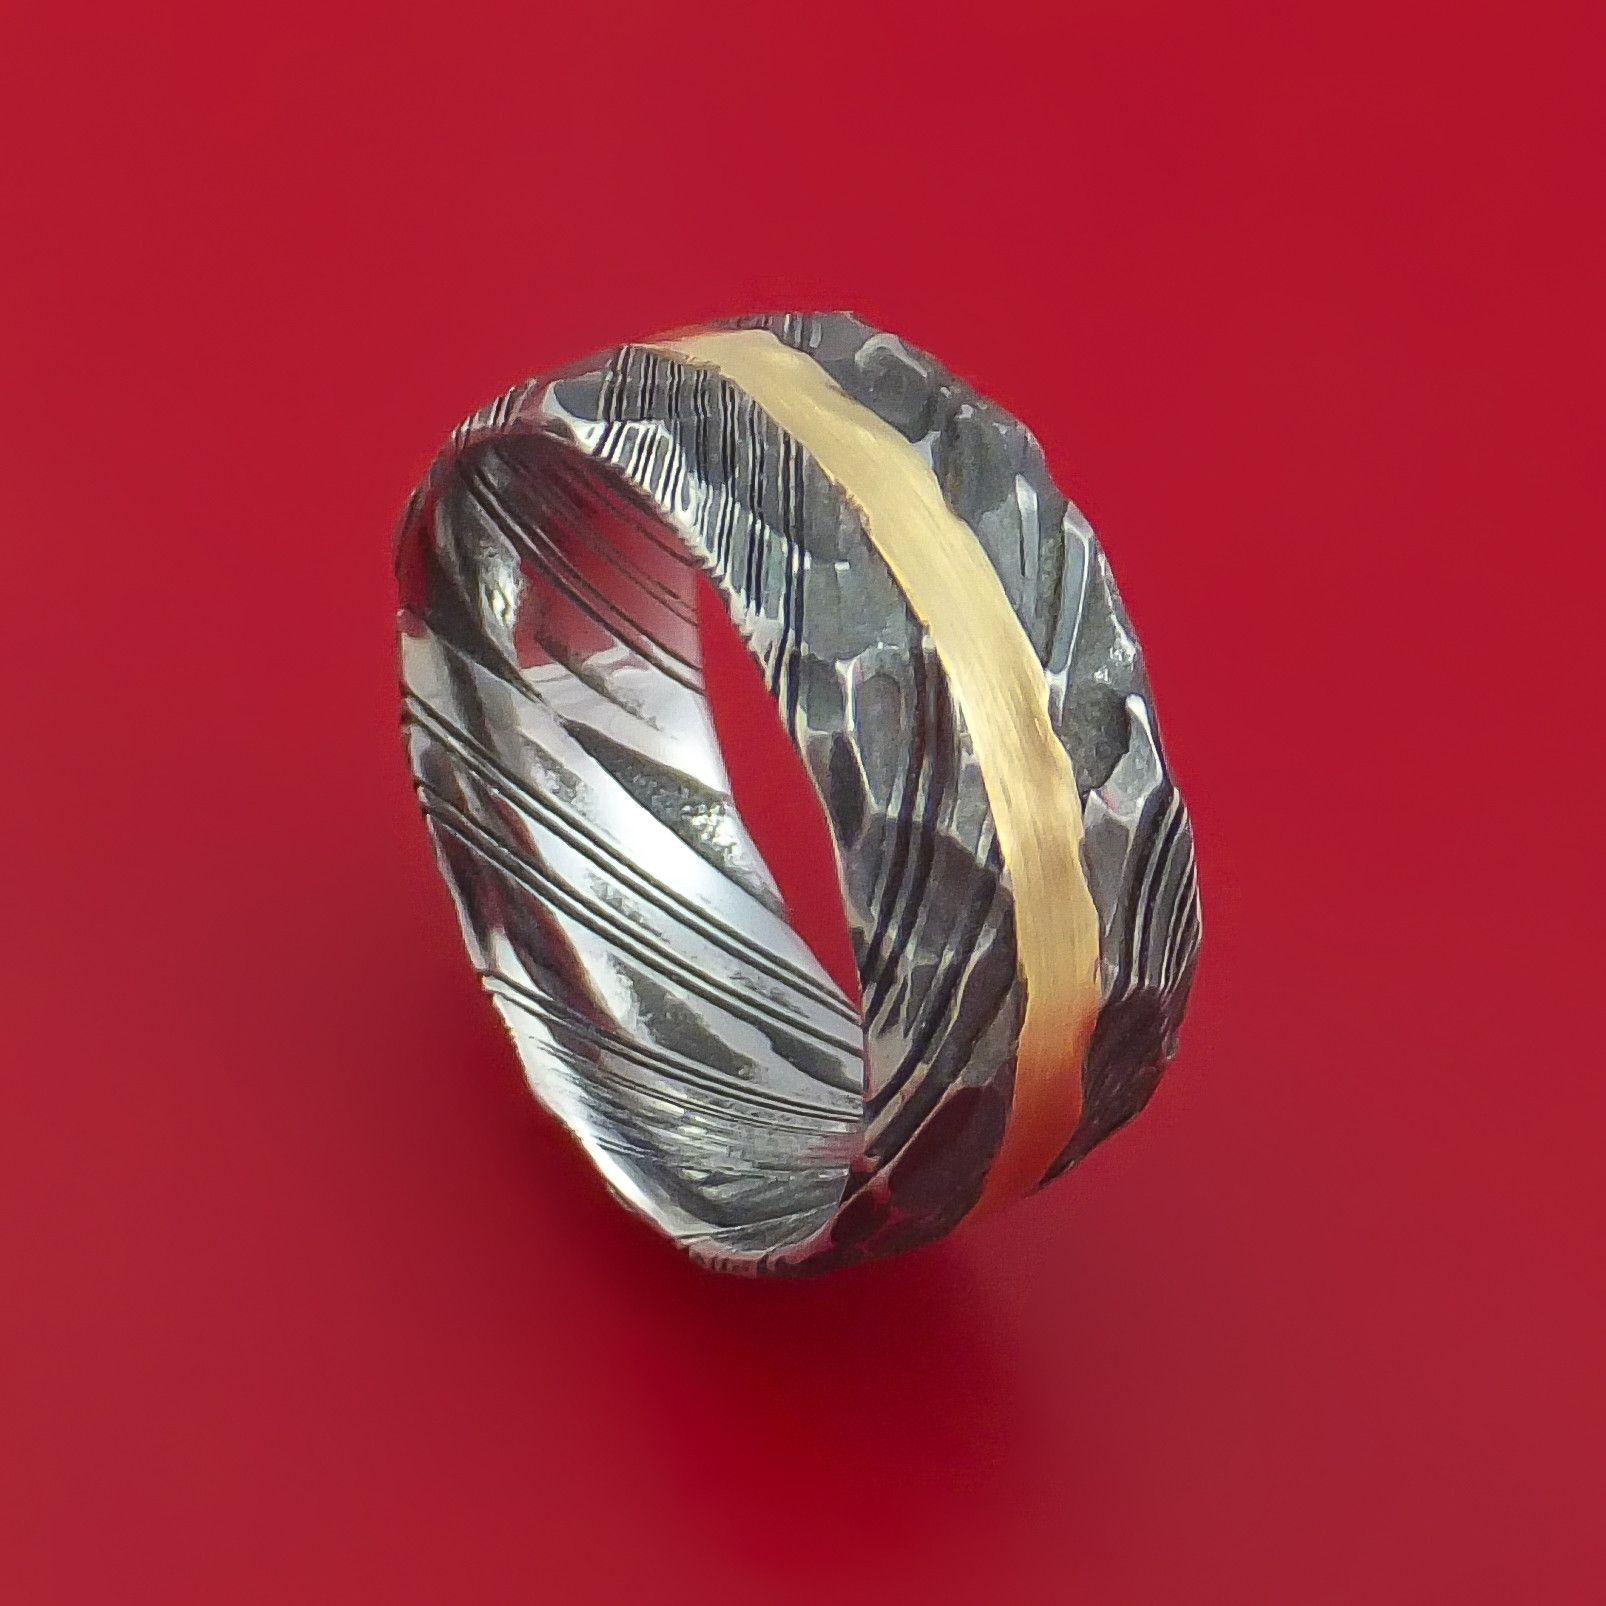 Hammered Kuro Damascus Steel Ring with 14k Yellow Gold